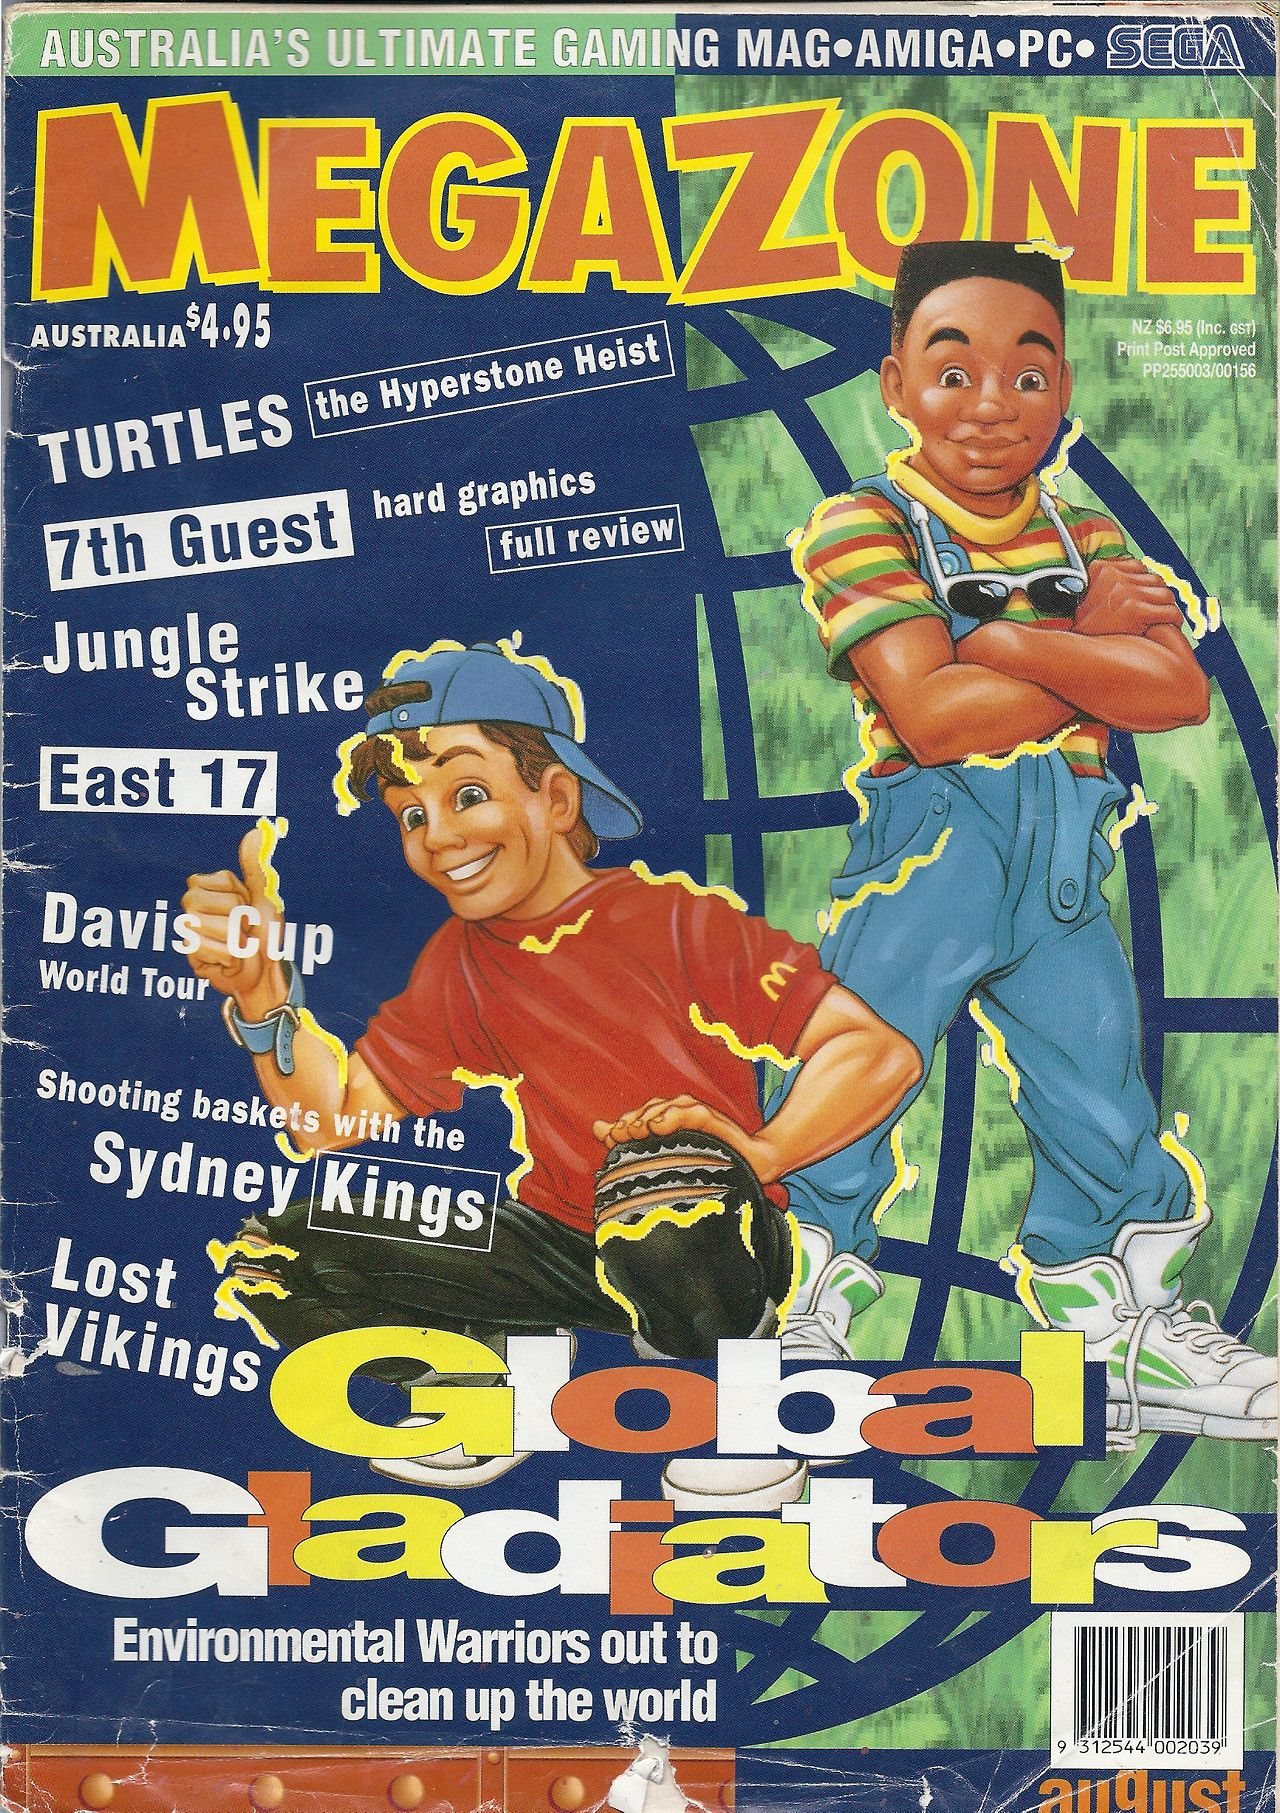 MegaZone Issue #30, August 1993 - Mick and Mack, the Global Gladiators!